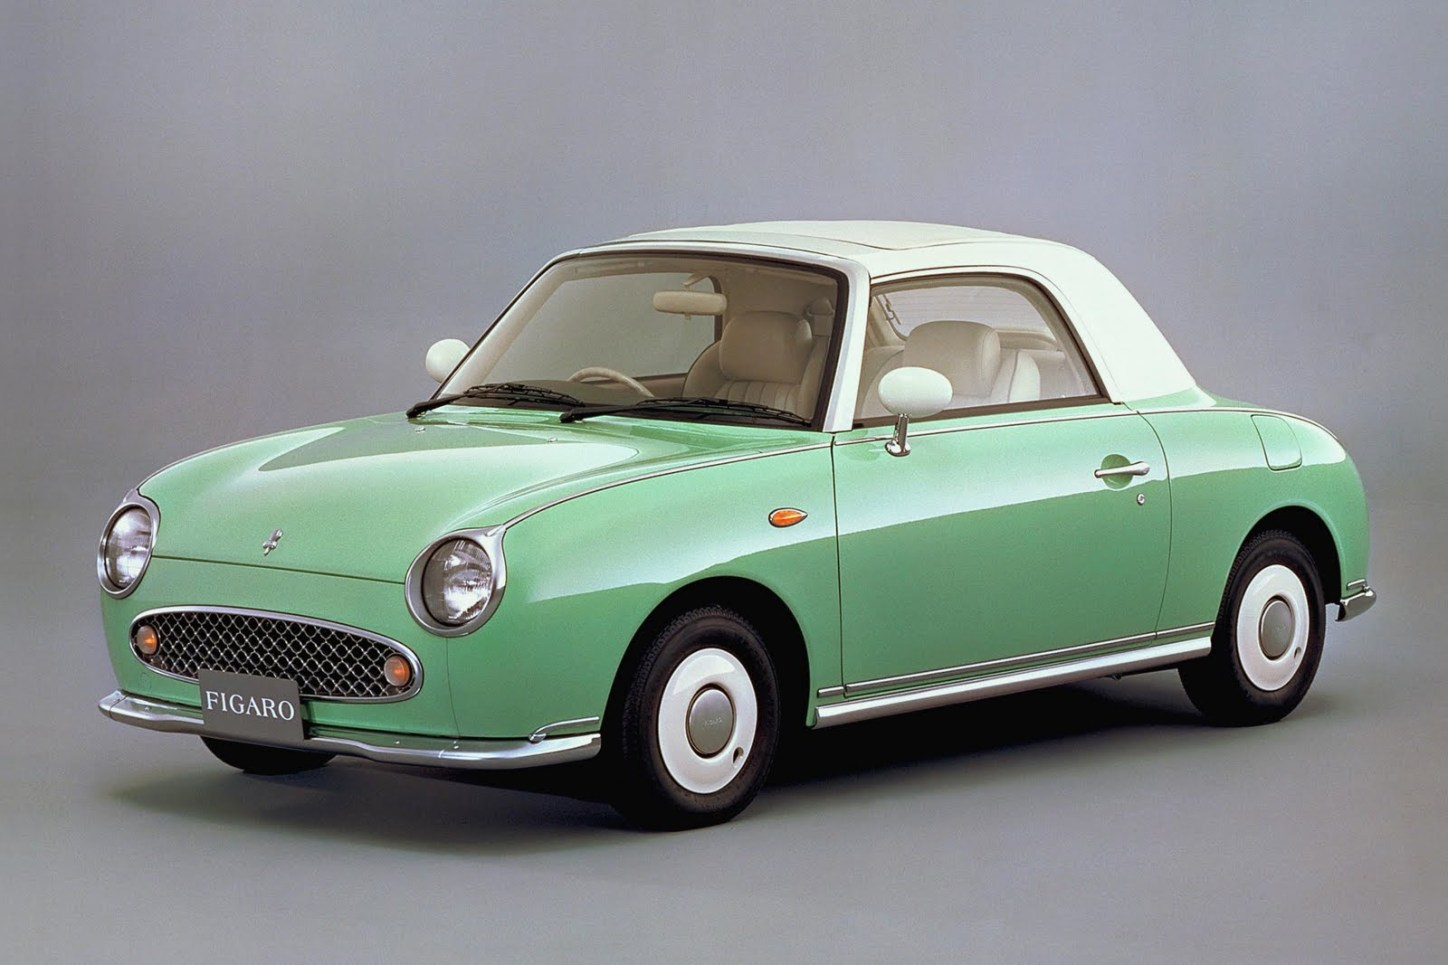 https://disaffectedmusings.files.wordpress.com/2018/10/e8f49-1989_nissan_figaro_concept_01.jpg